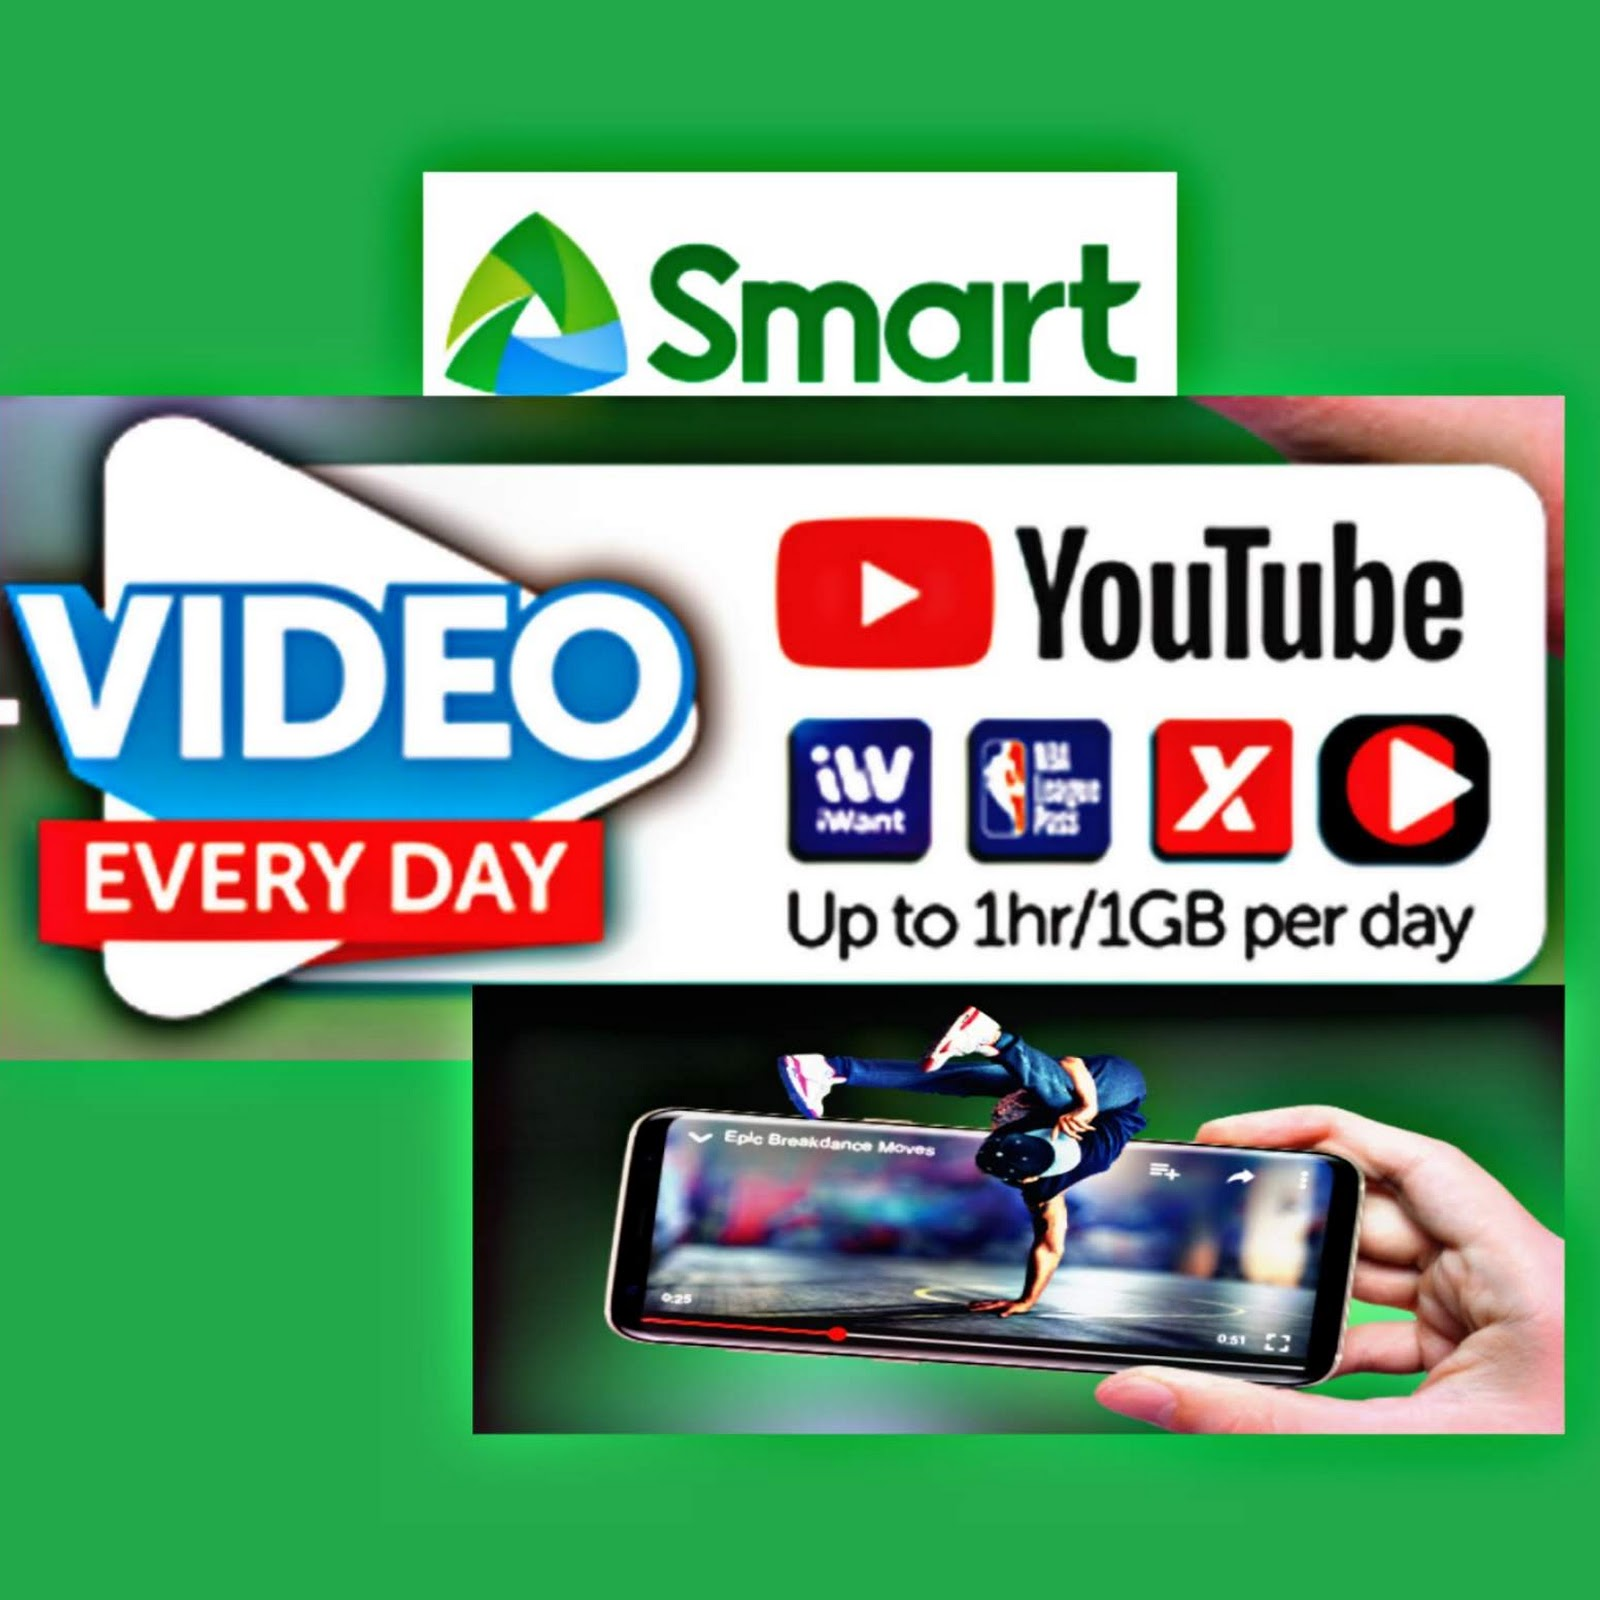 List Of Smart Internet Promos Giga Surf Promos With Free 1GB Video Everyday